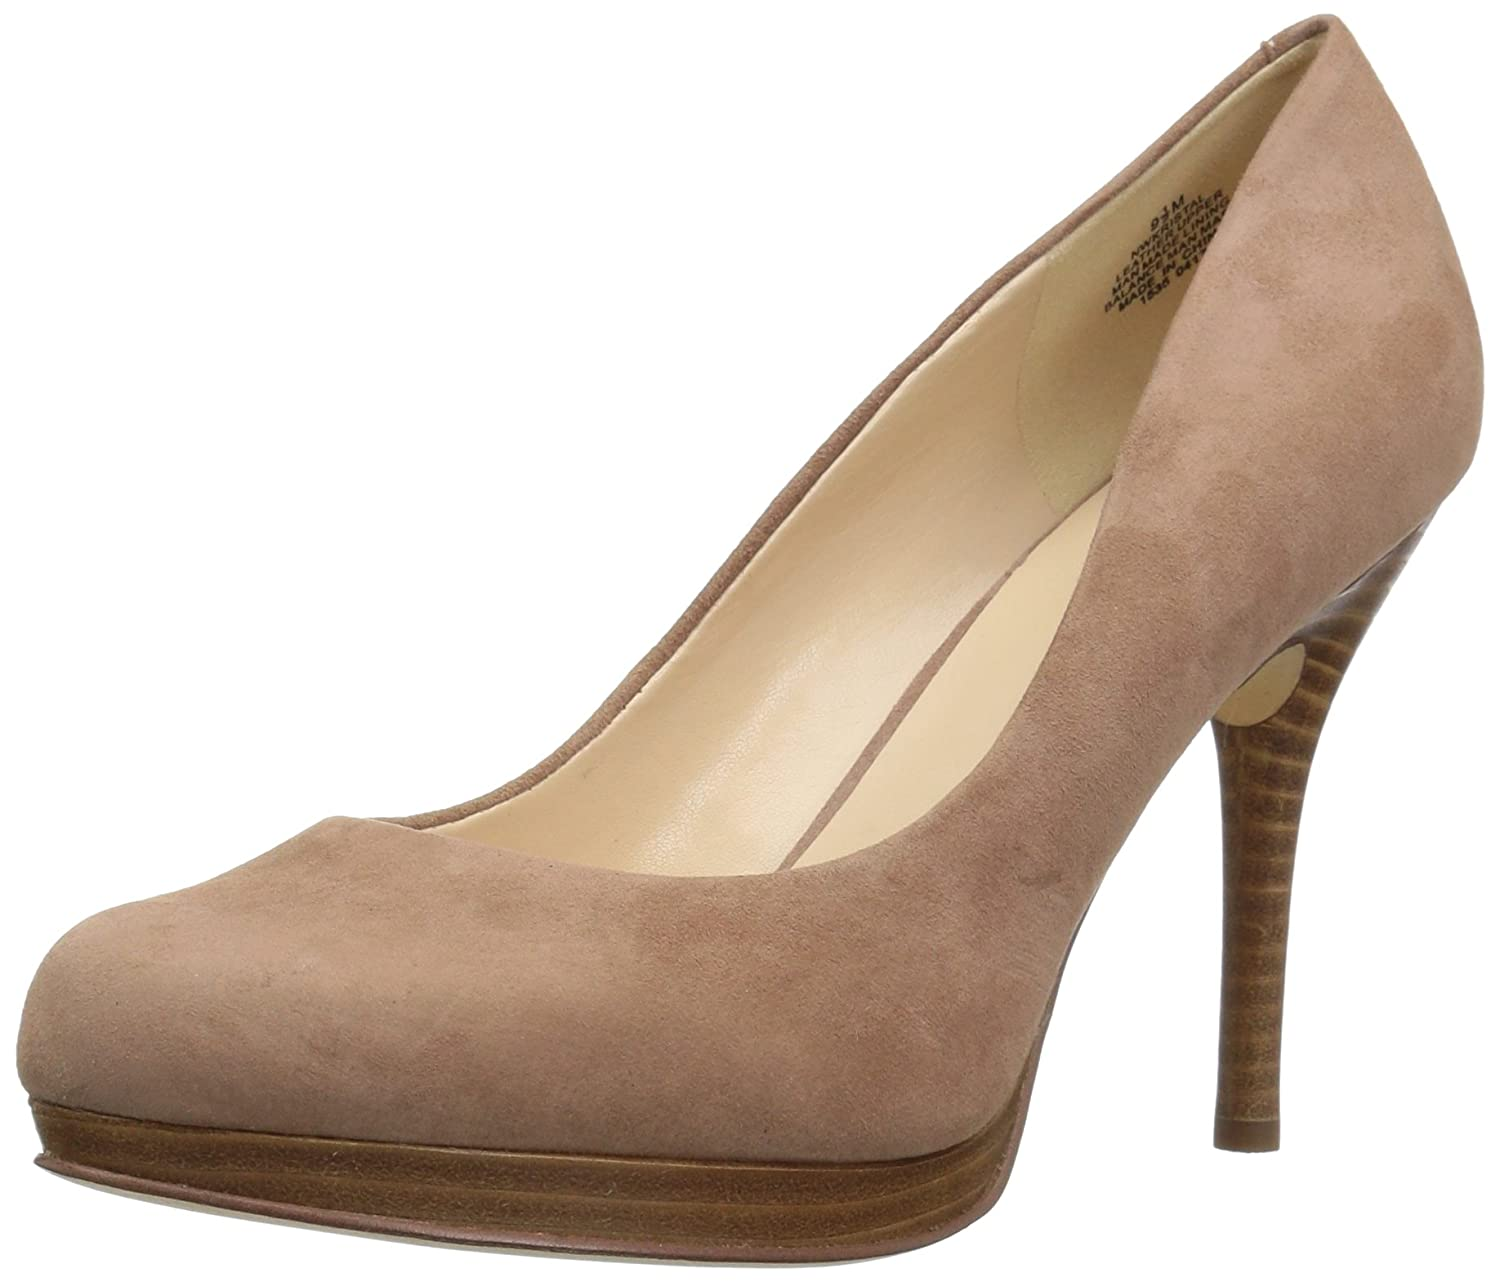 Nine West Women's Kristal Suede Dress Pump B01NAEUQFD 7 B(M) US|Light Natural